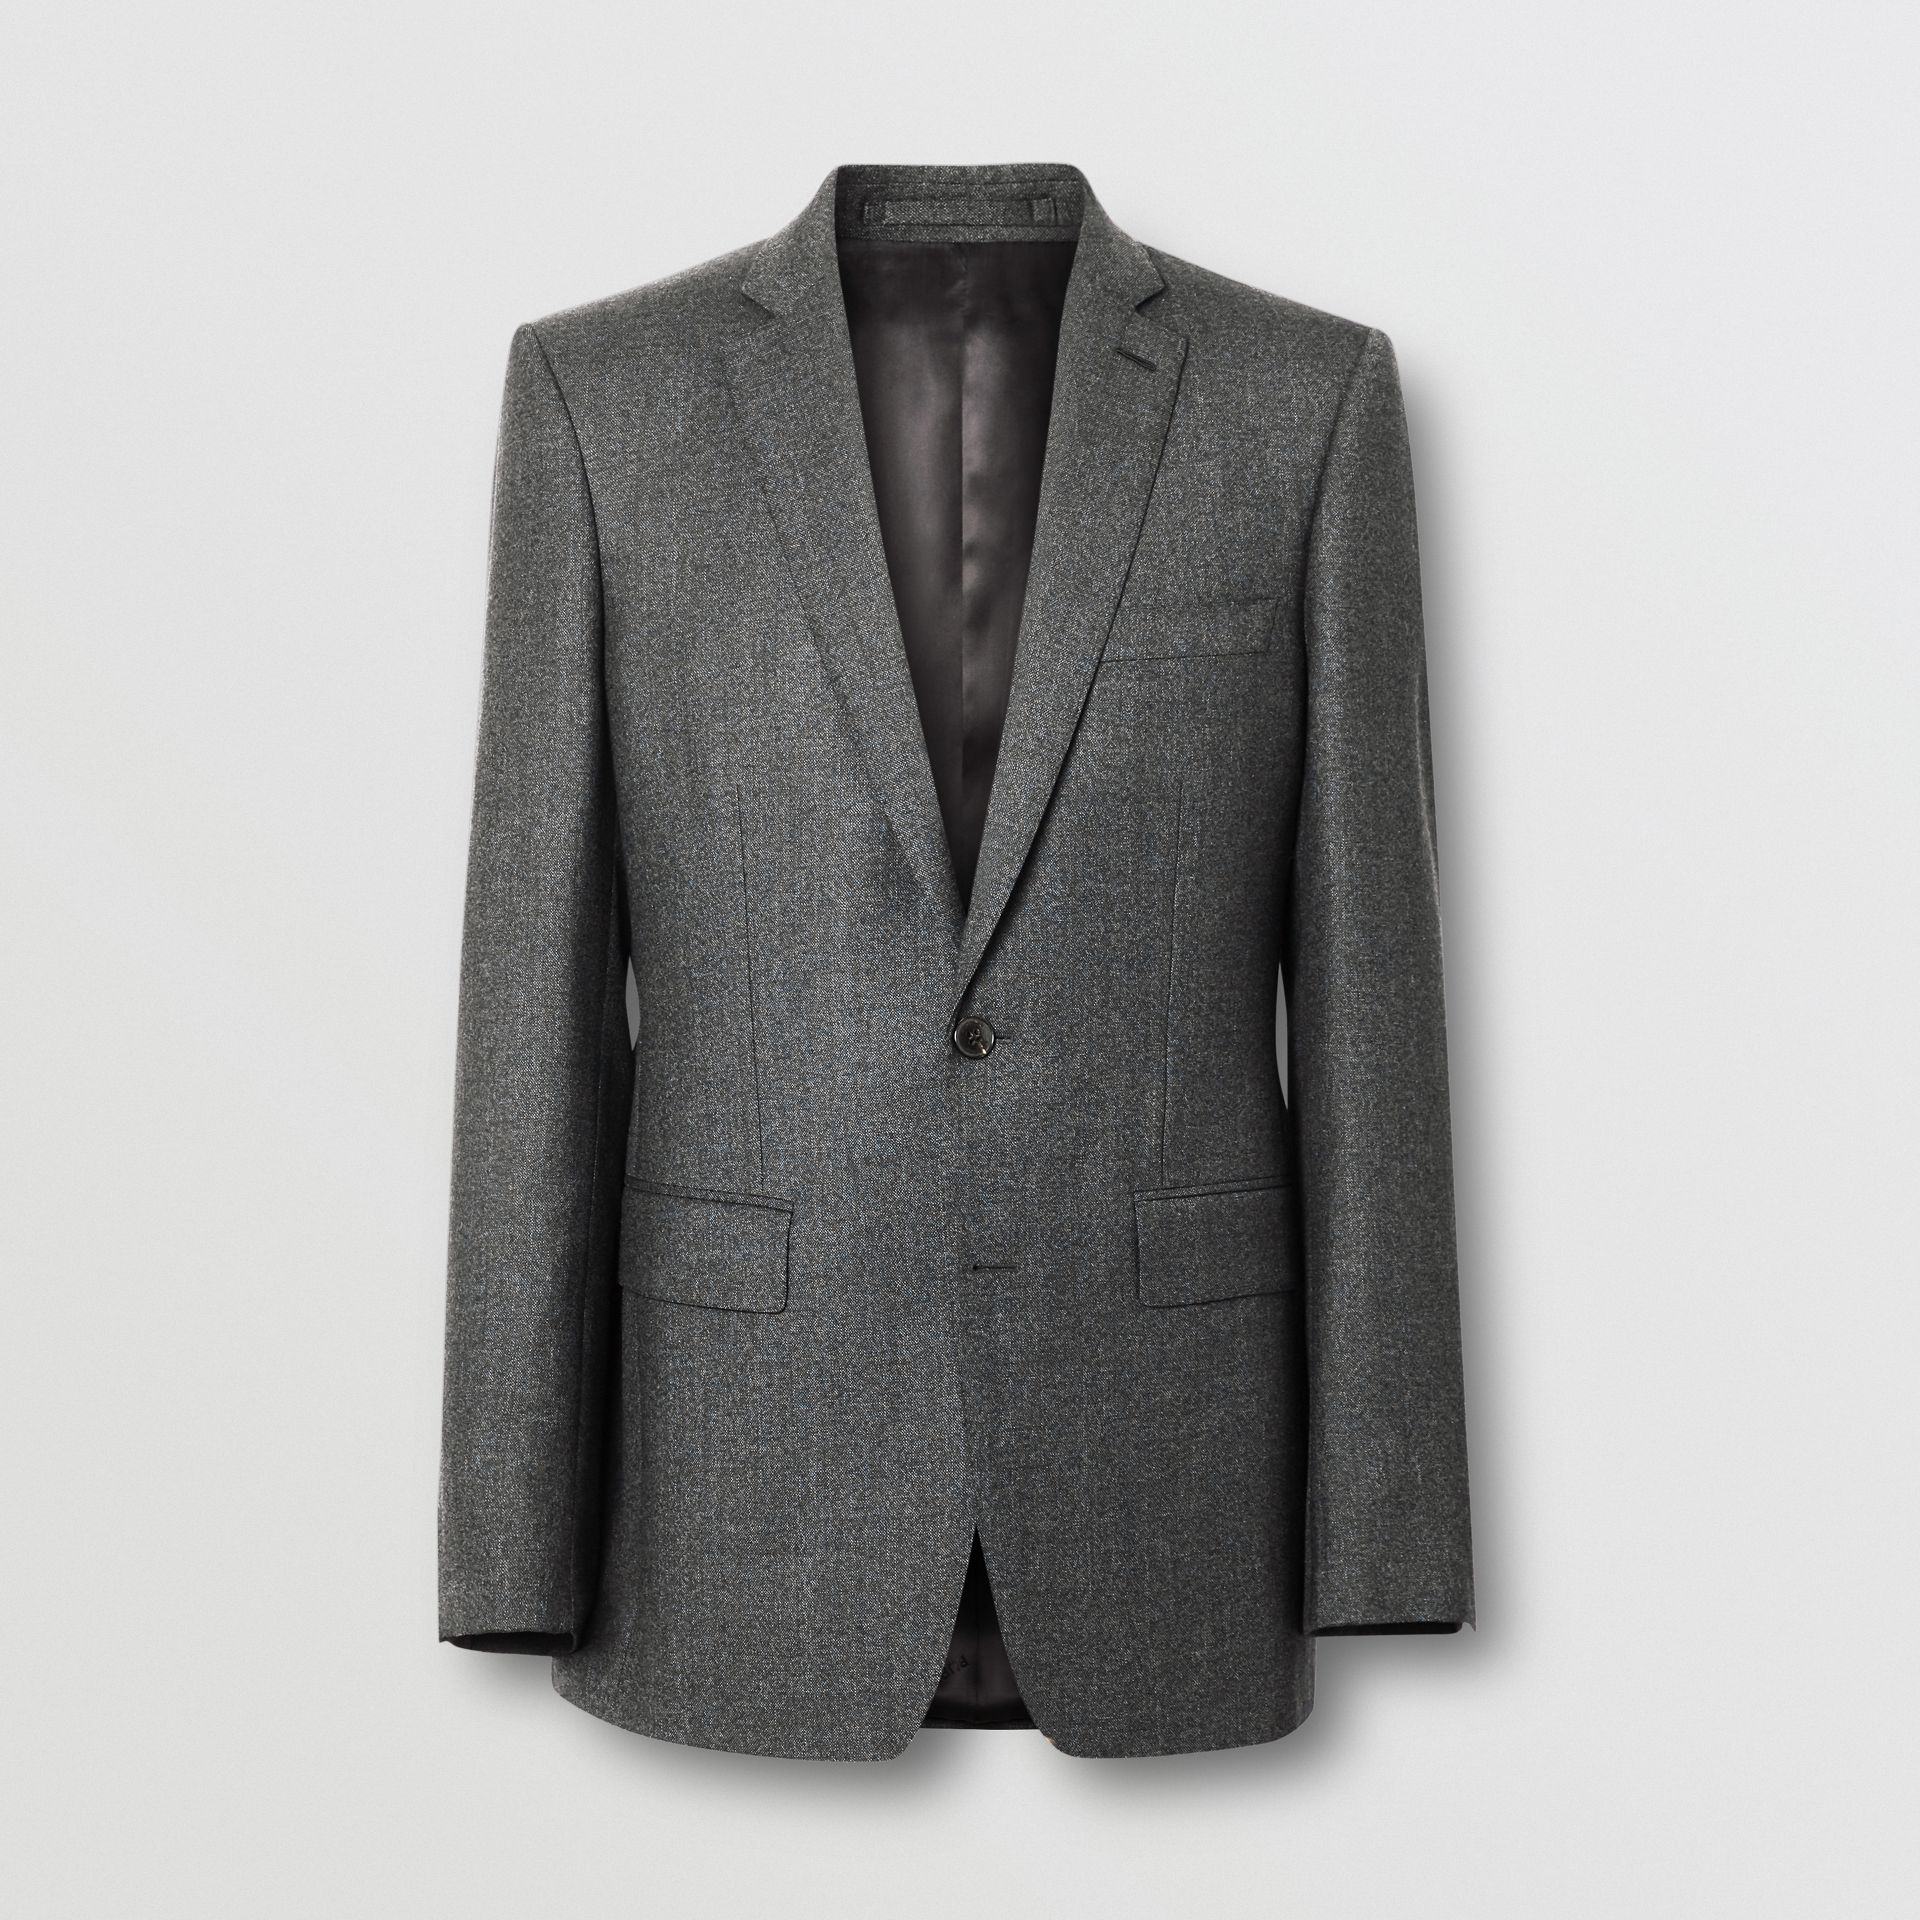 English Fit Sharkskin Wool Suit in Black Melange - Men | Burberry Canada - gallery image 3